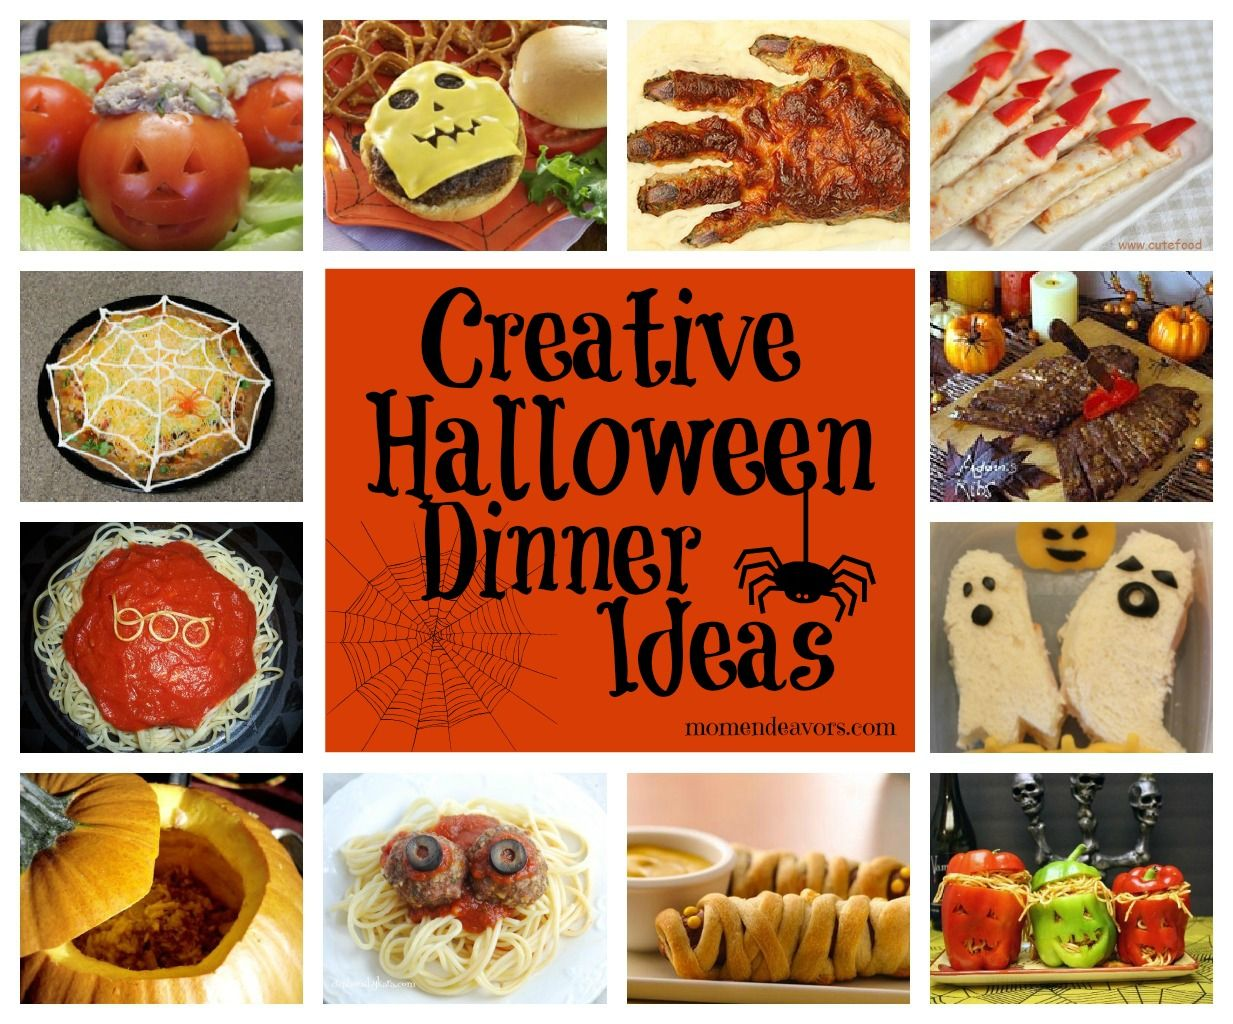 Links to lots of creative #Halloween dinner ideas & side dishes! via  momendeavors.